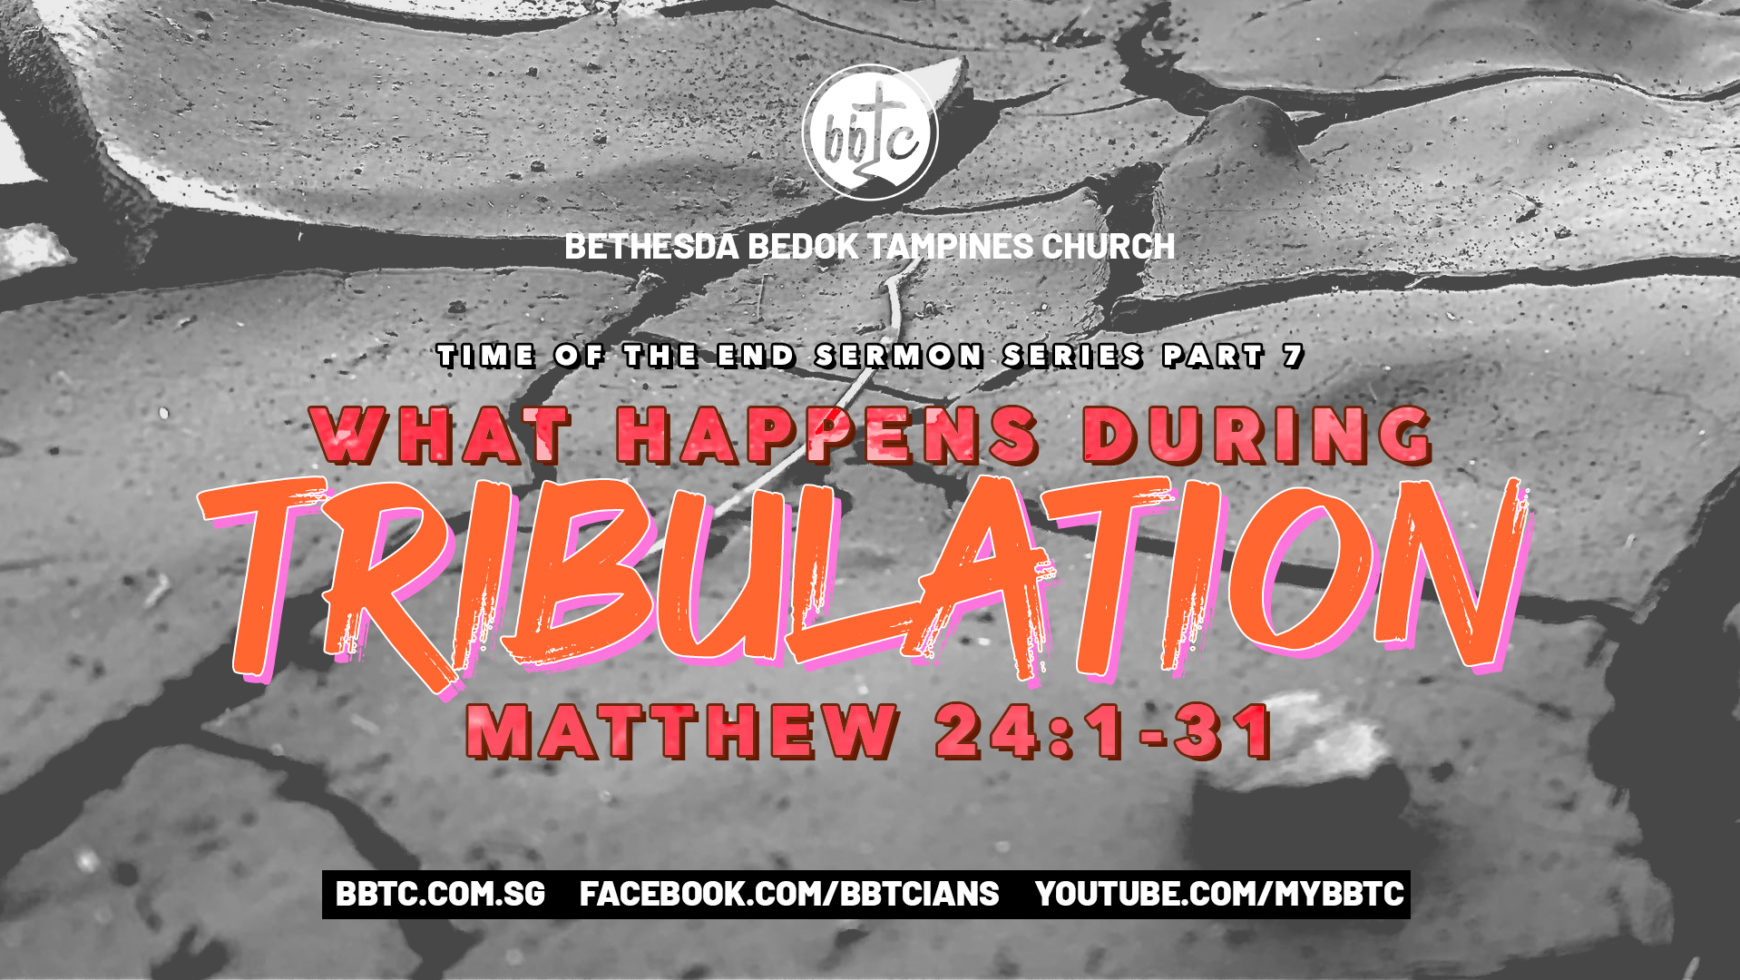 WHAT HAPPENS DURING TRIBULATION